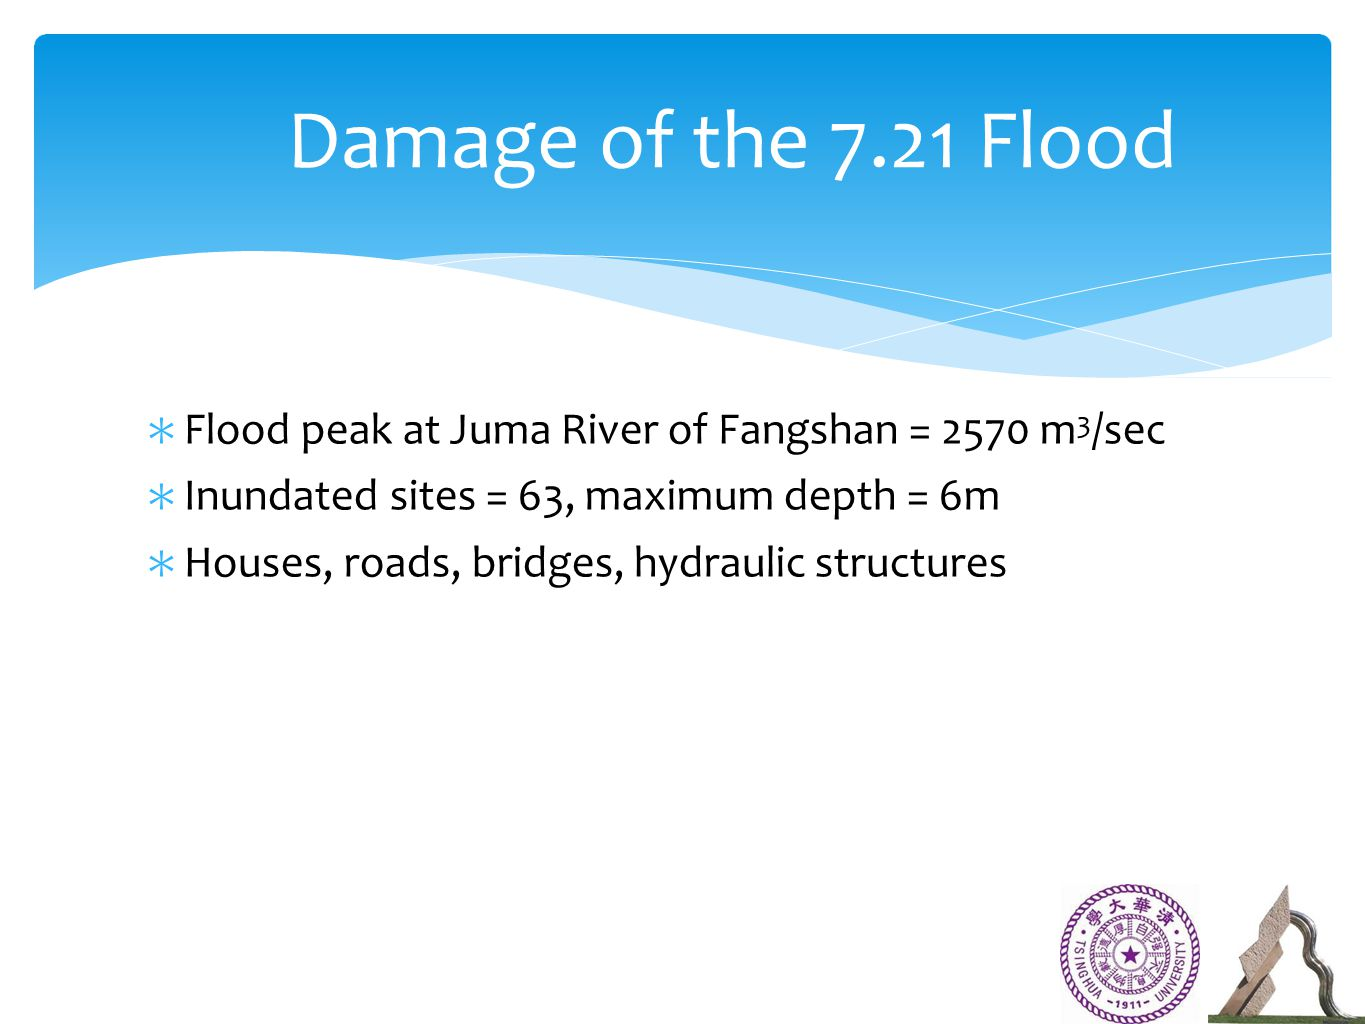 ∗ Flood peak at Juma River of Fangshan = 2570 m 3 /sec ∗ Inundated sites = 63, maximum depth = 6m ∗ Houses, roads, bridges, hydraulic structures Damage of the 7.21 Flood